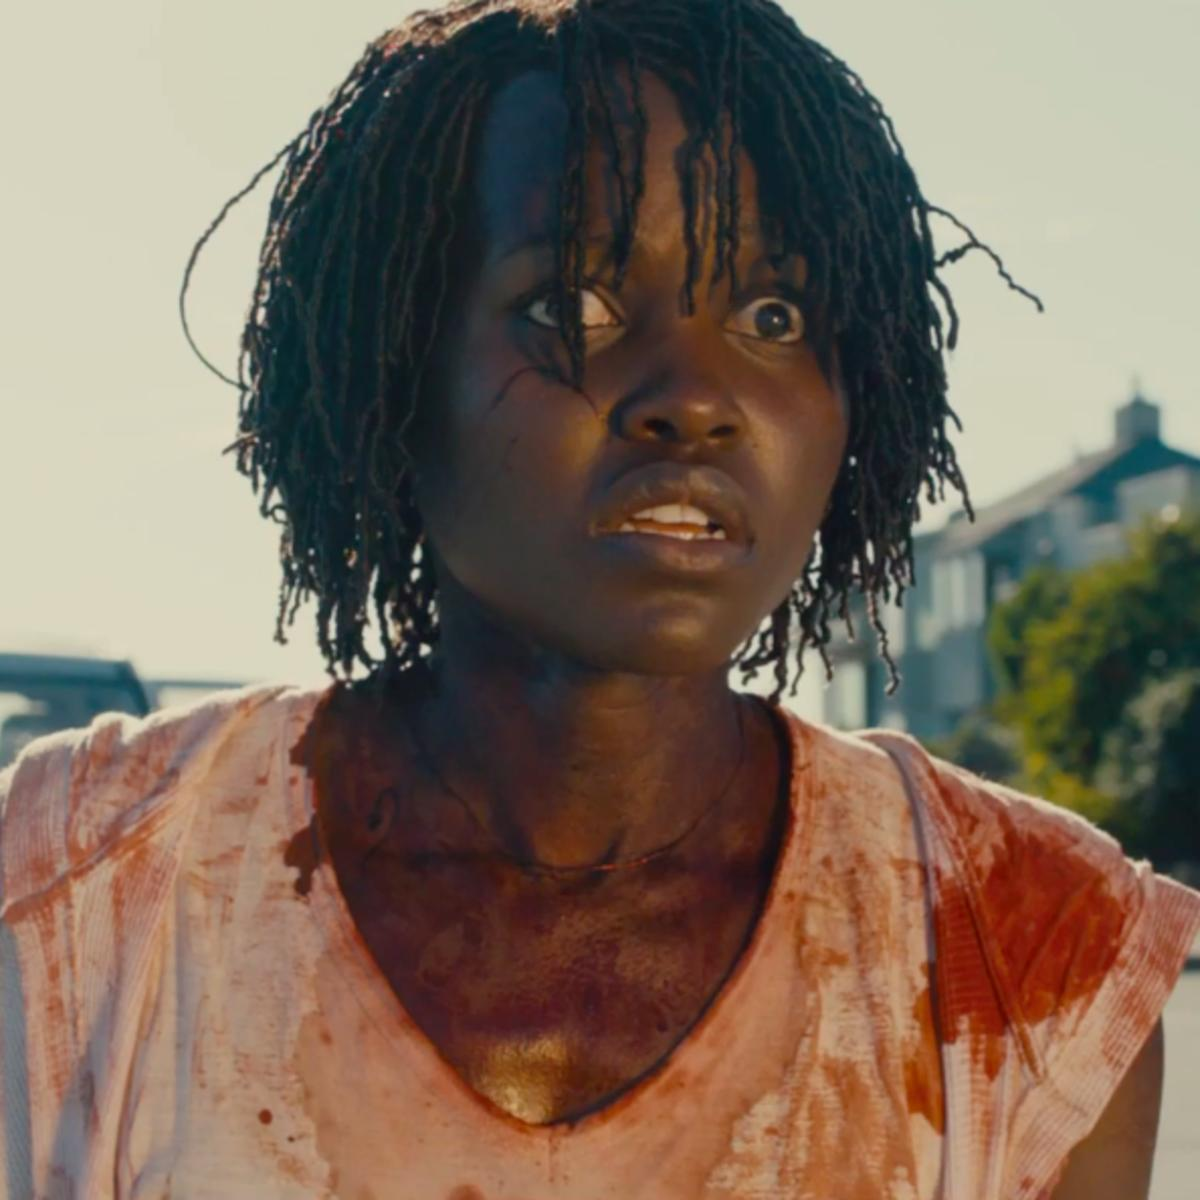 First Trailer for Jordan Peele's New Film 'Us' Starring Lupita Nyong'o